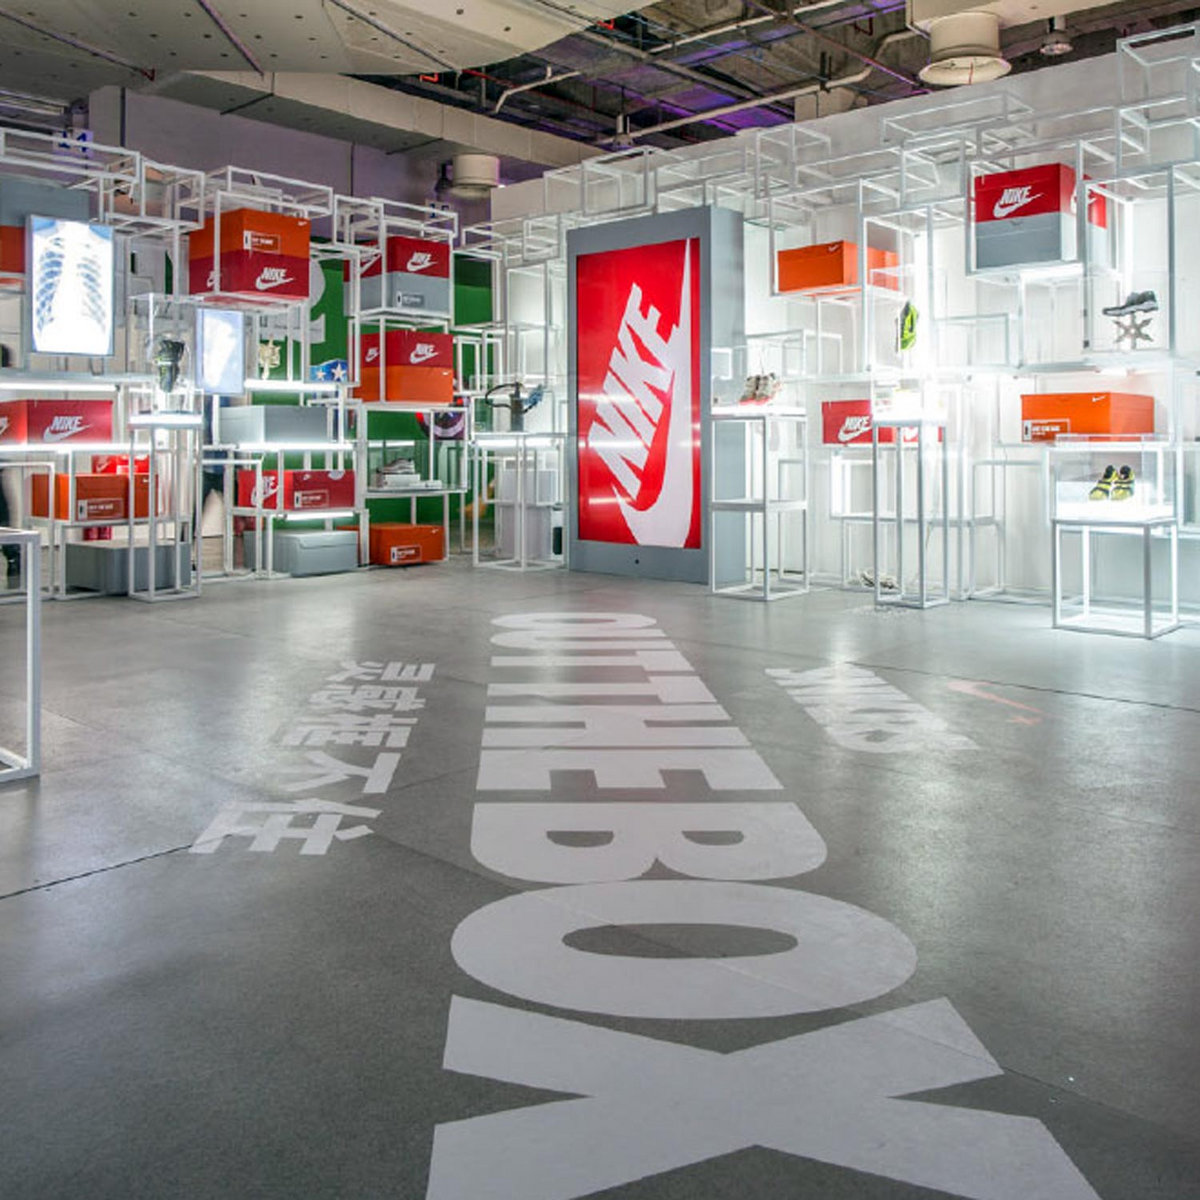 Nike Shanghai Expo (Soundscapes) | Coda to Coda